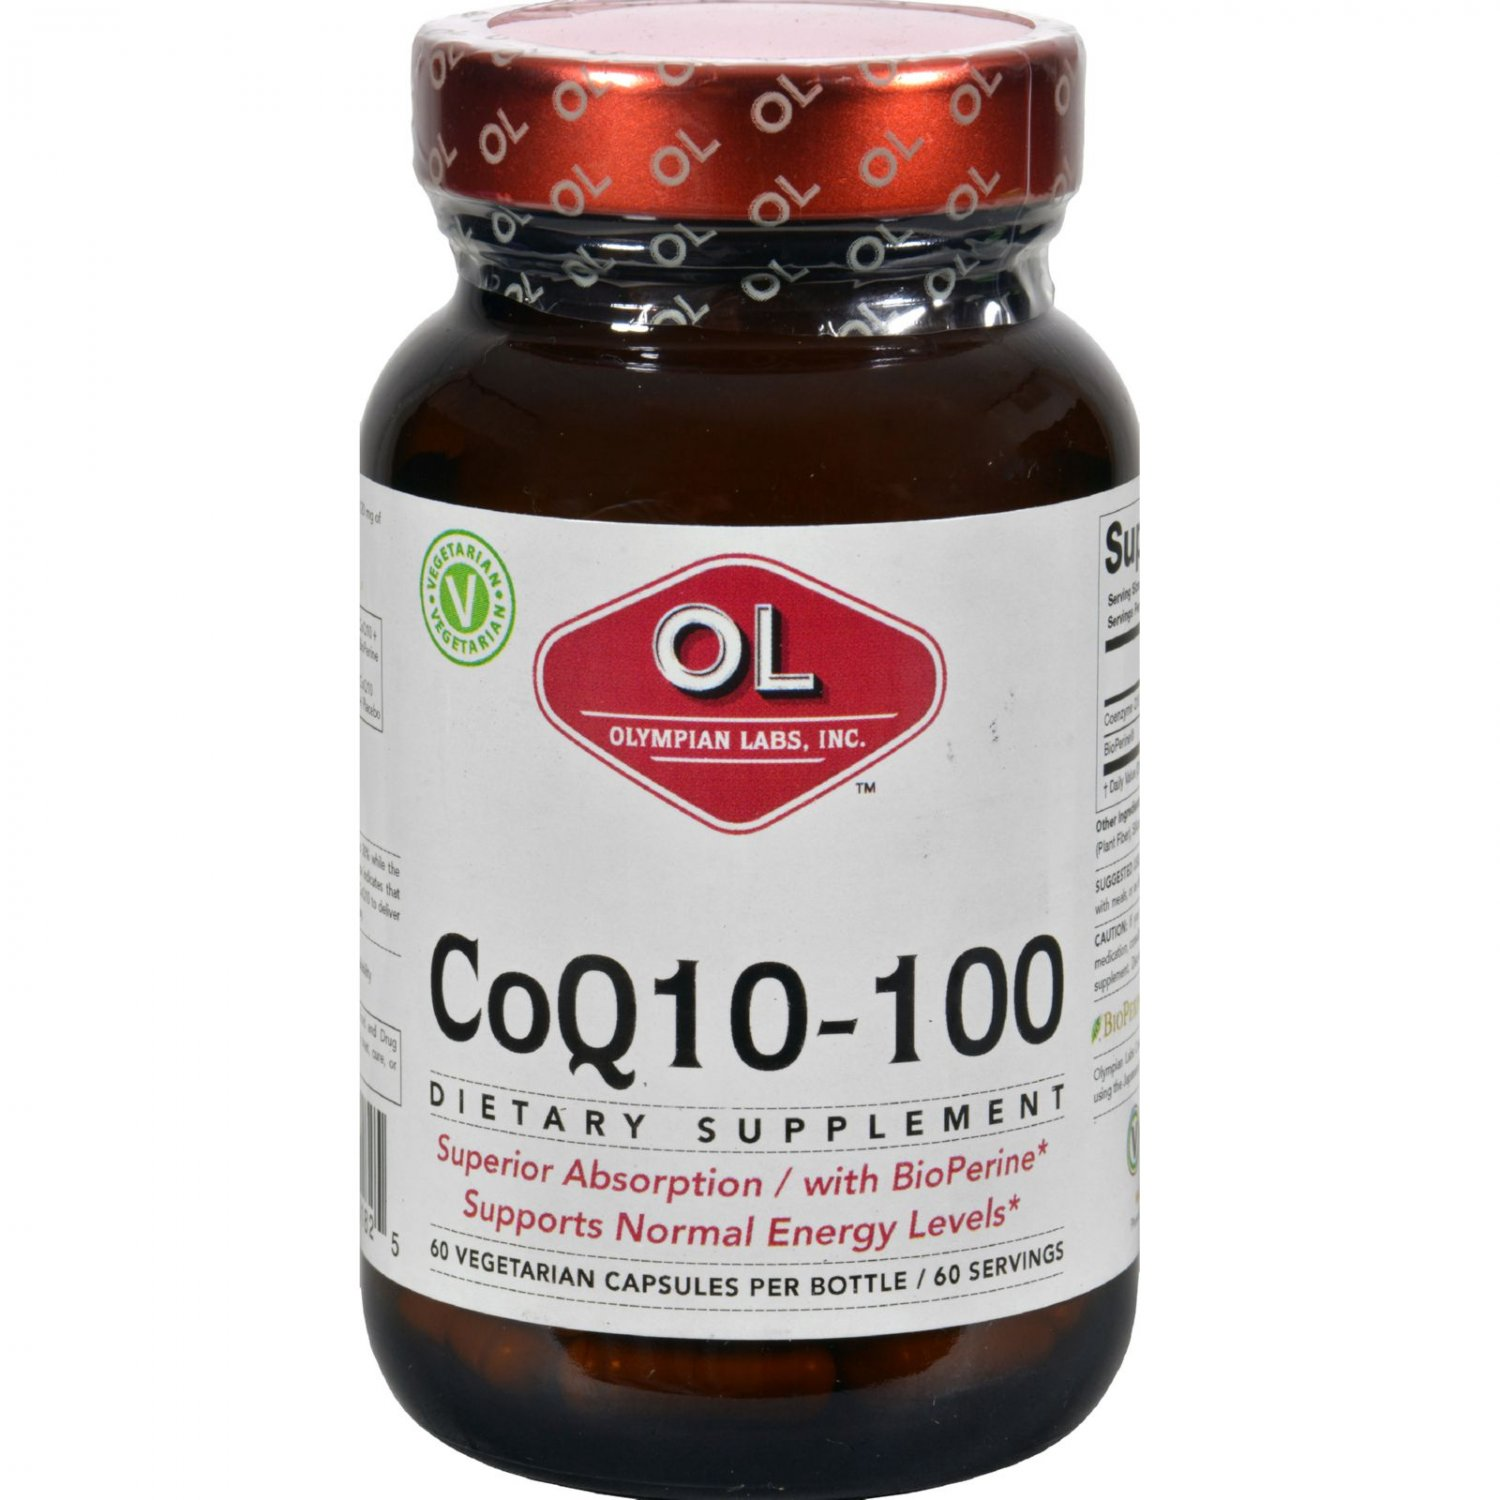 Olympian Labs Coenzyme Q10 - 100 mg - 60 Capsules